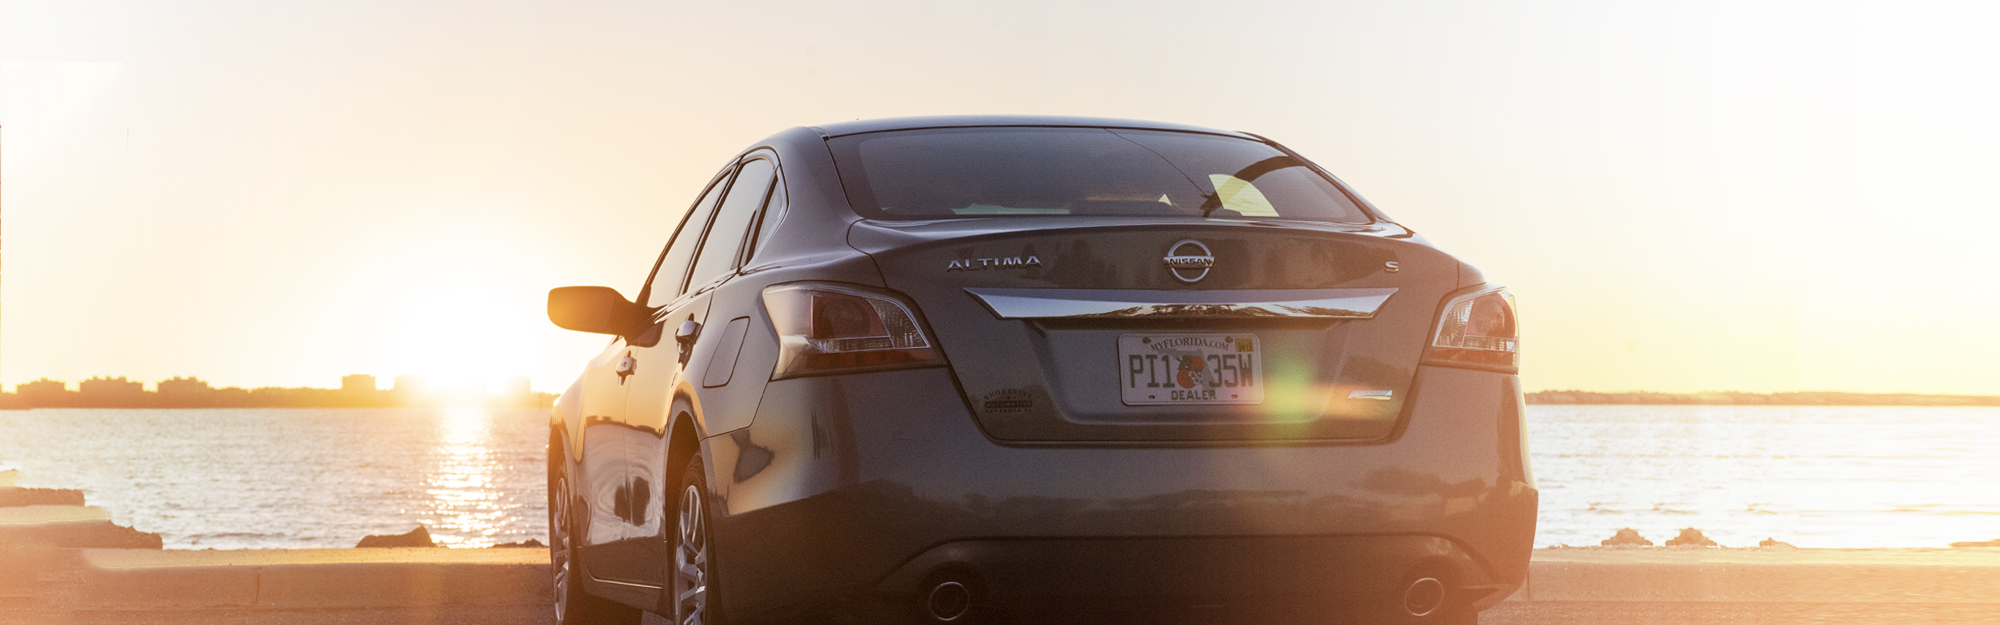 Used Nissan Altima car for sale parked at Sarasota Bay at sunset